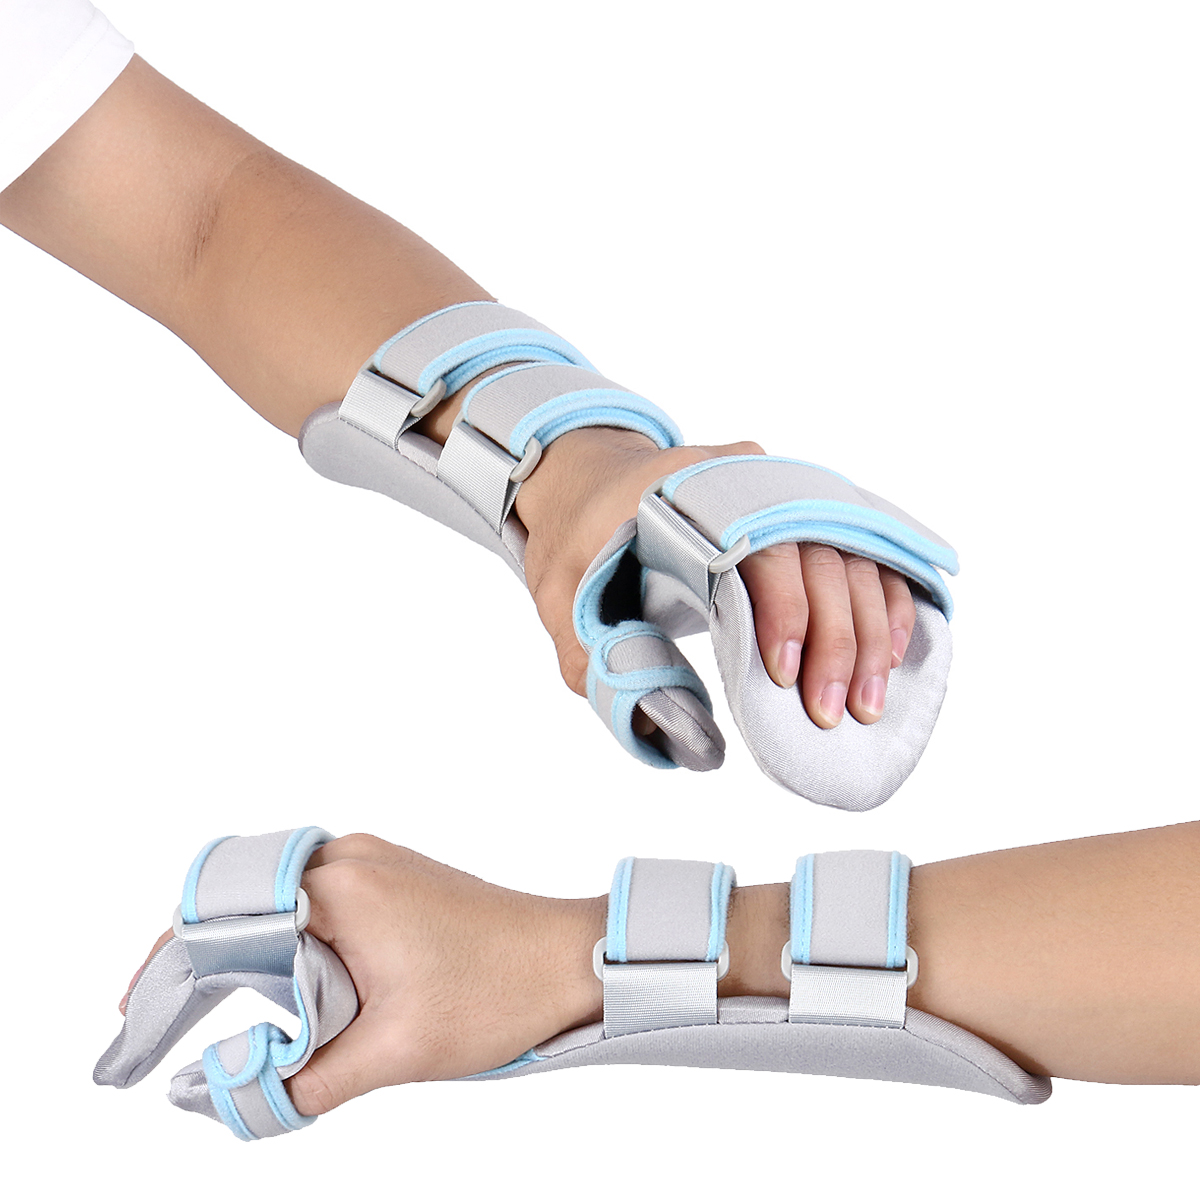 Adjustable Wrist Fracture Fixation Board Braces Hand Wrist Support Splint Ligament Injury Arm Protection Strap Breathable Braces